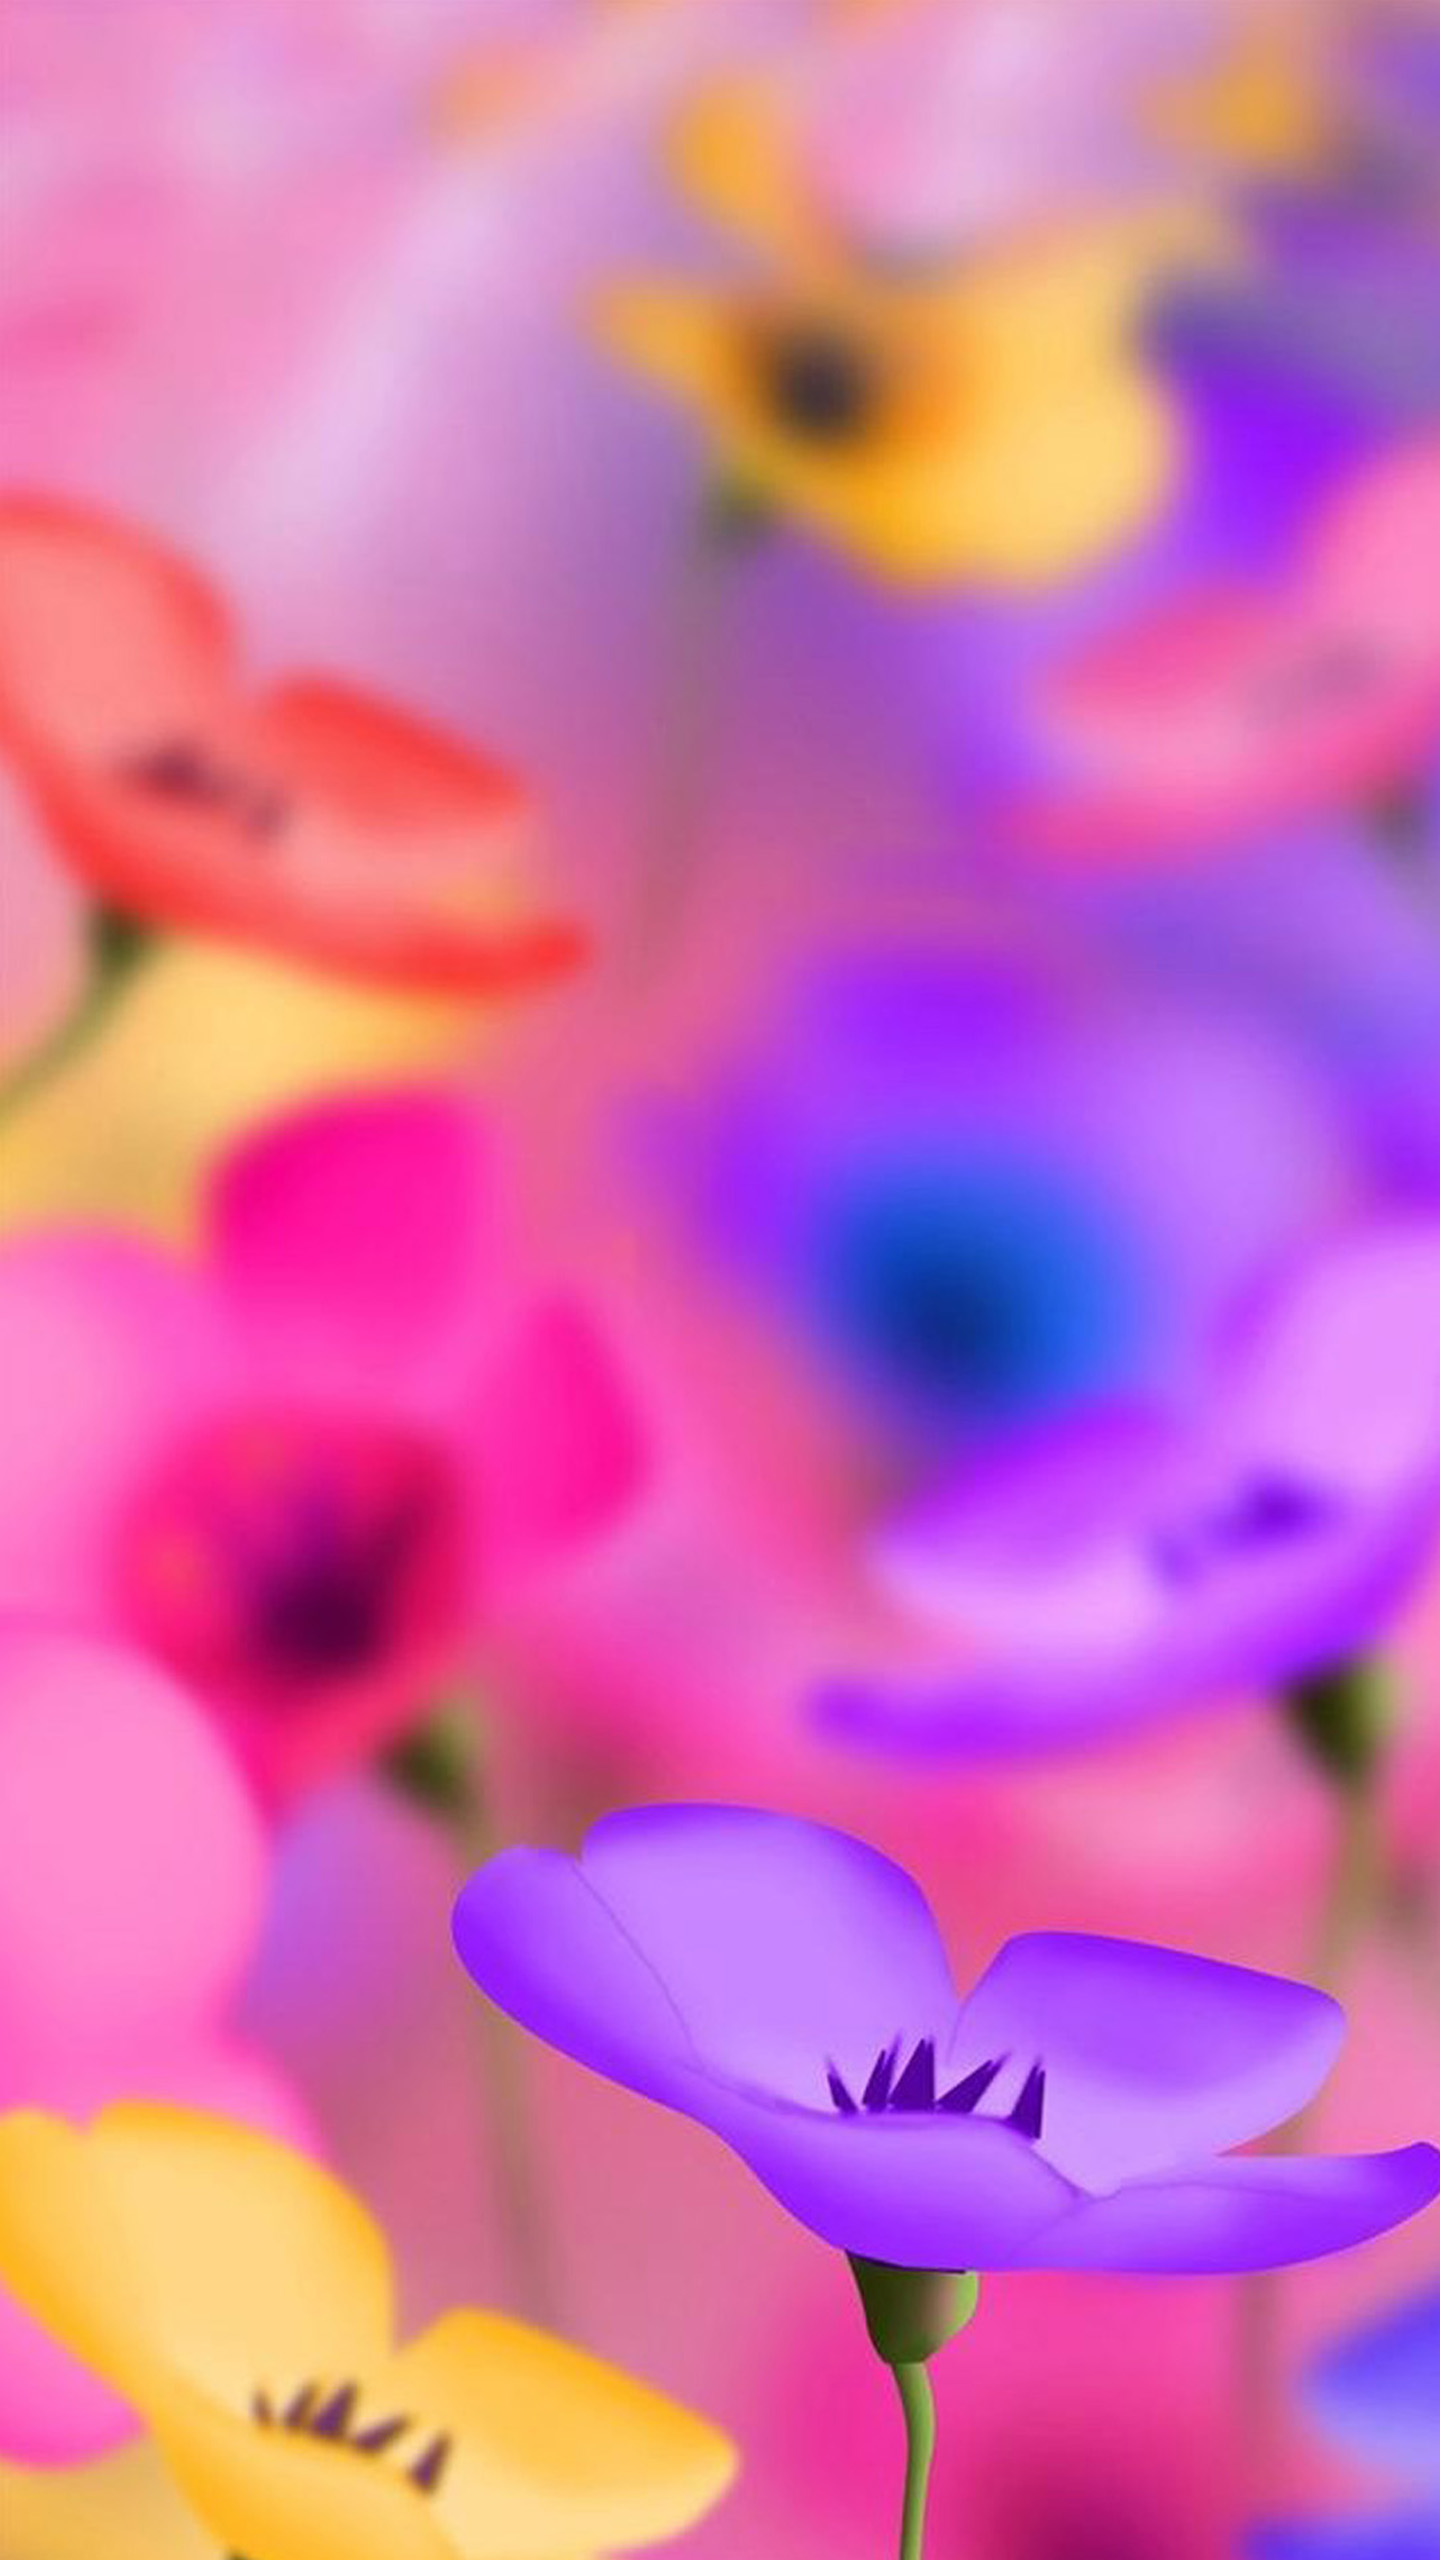 colorful-samsung-galaxy-s-wallpaper-pic-mch053493 - dzbc